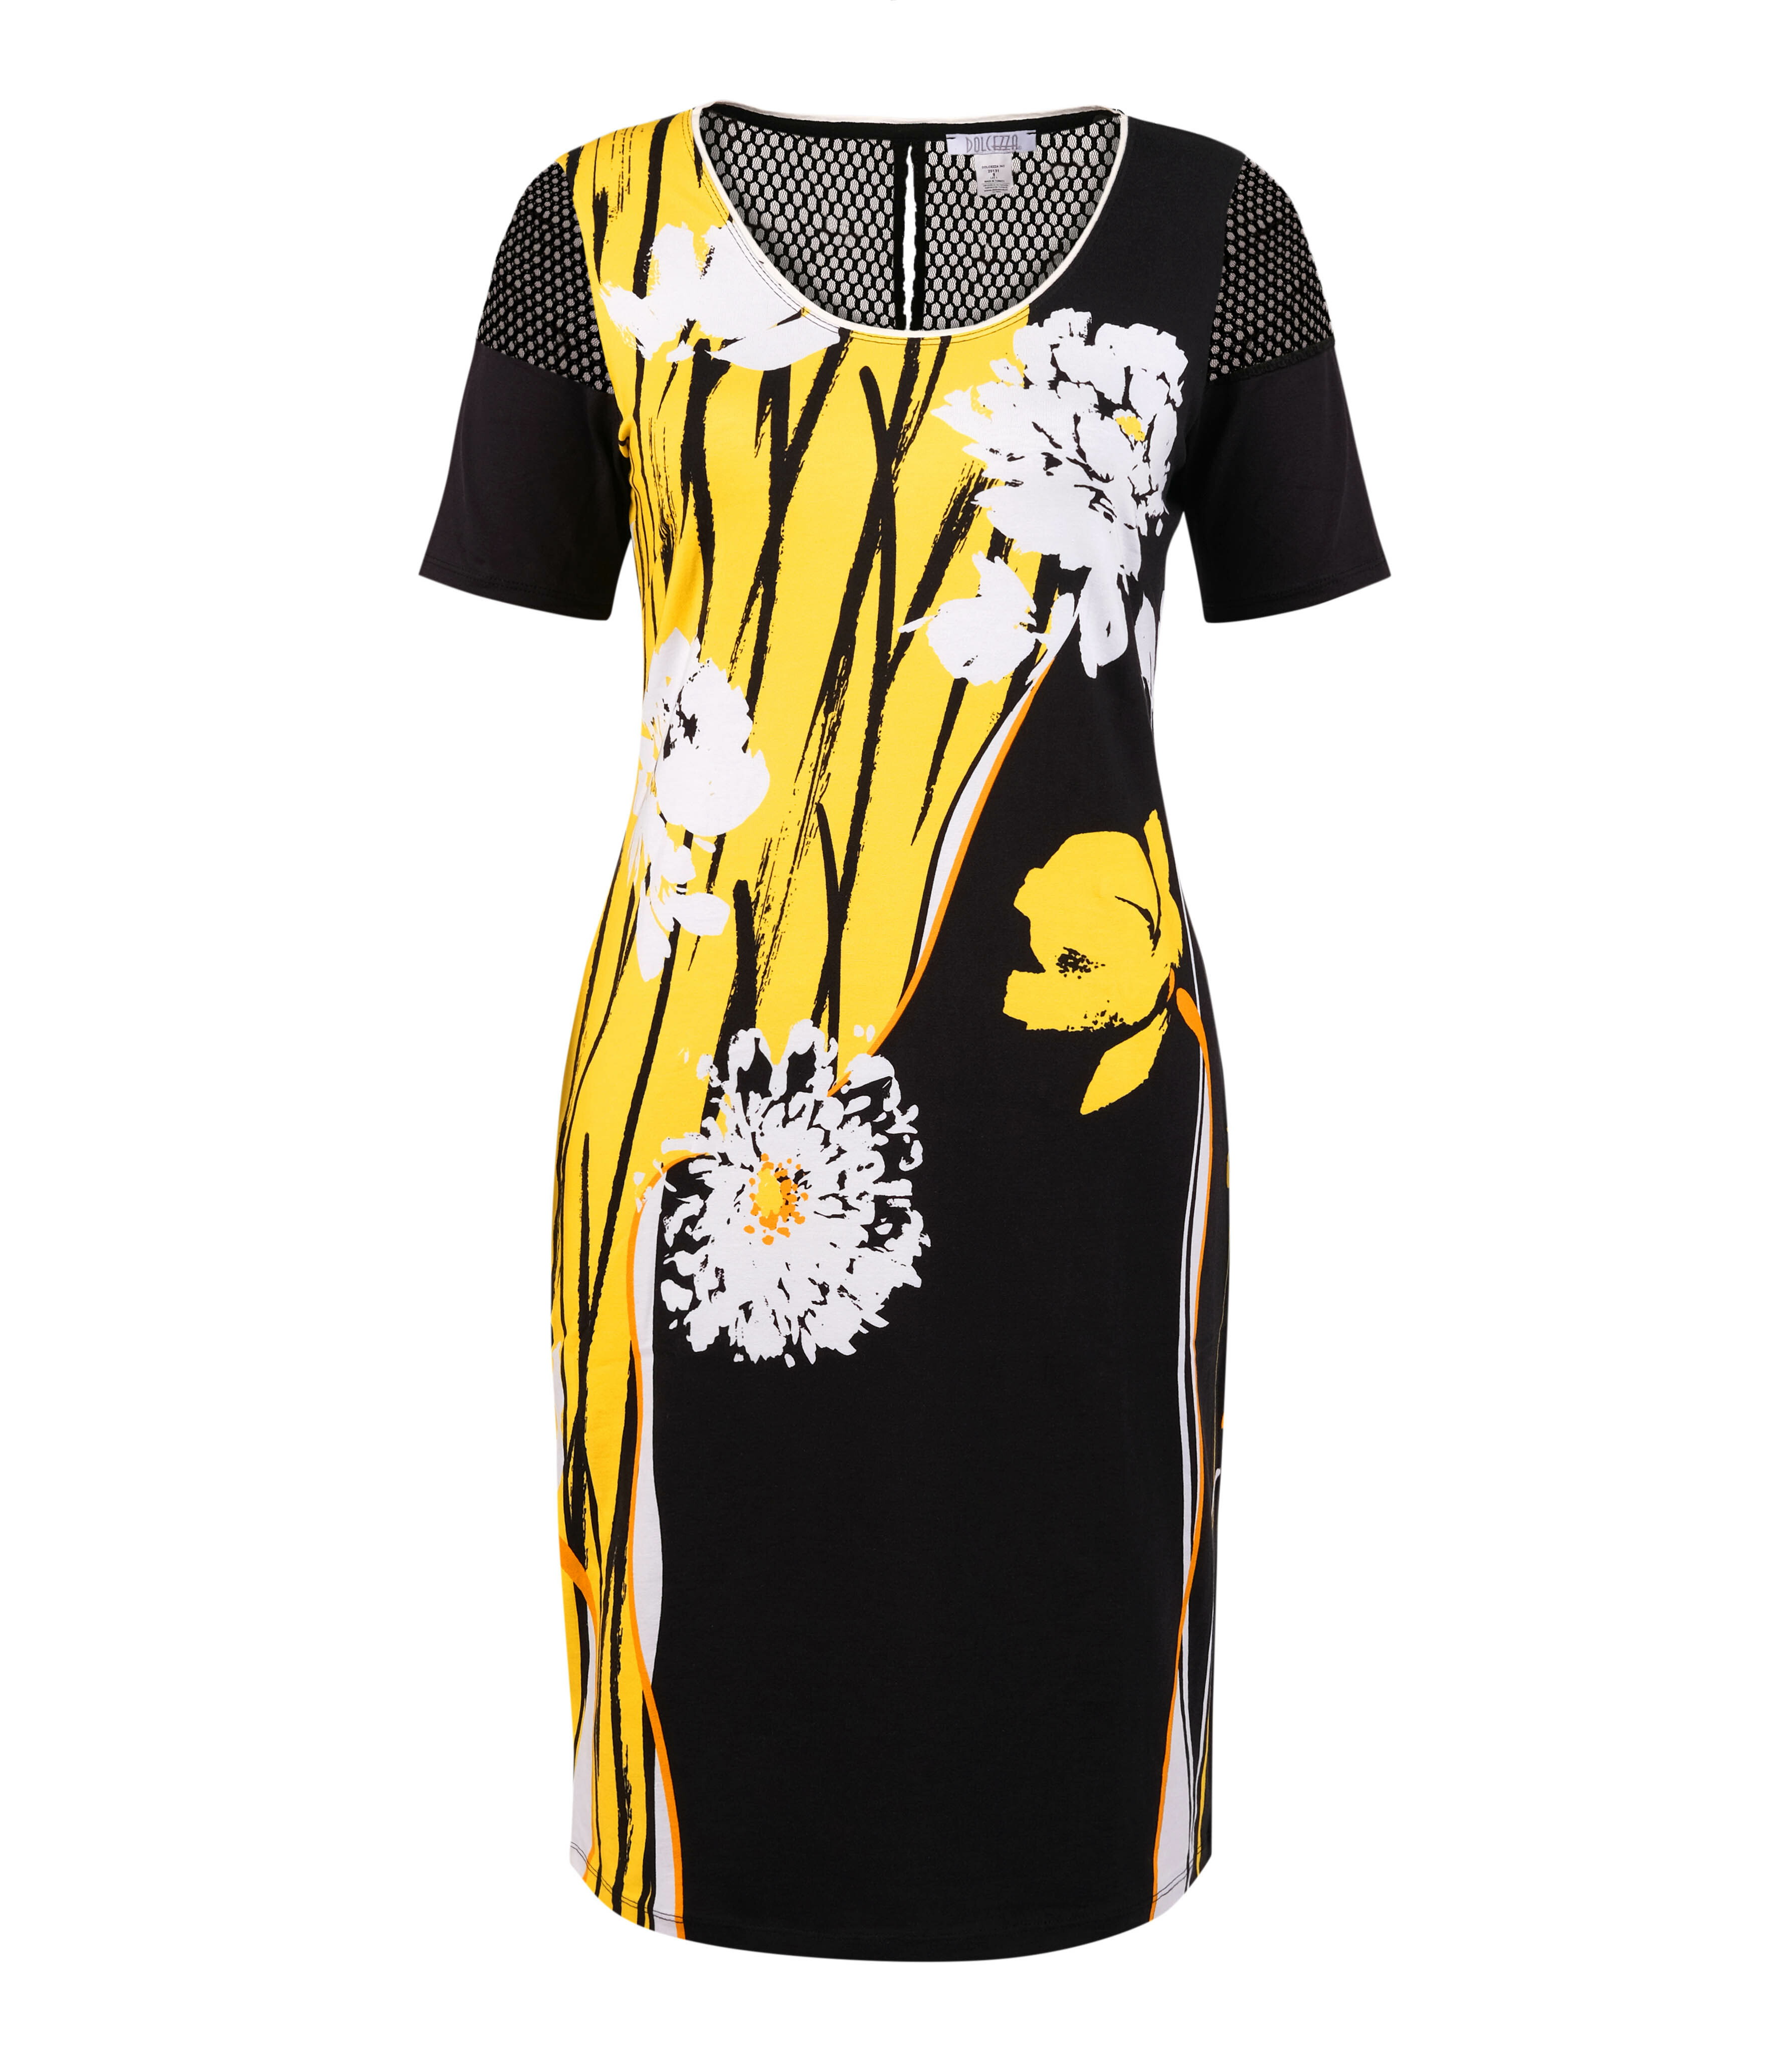 Simply Art Dolcezza: Bumble Bee Summer Bloom Abstract Art Dress